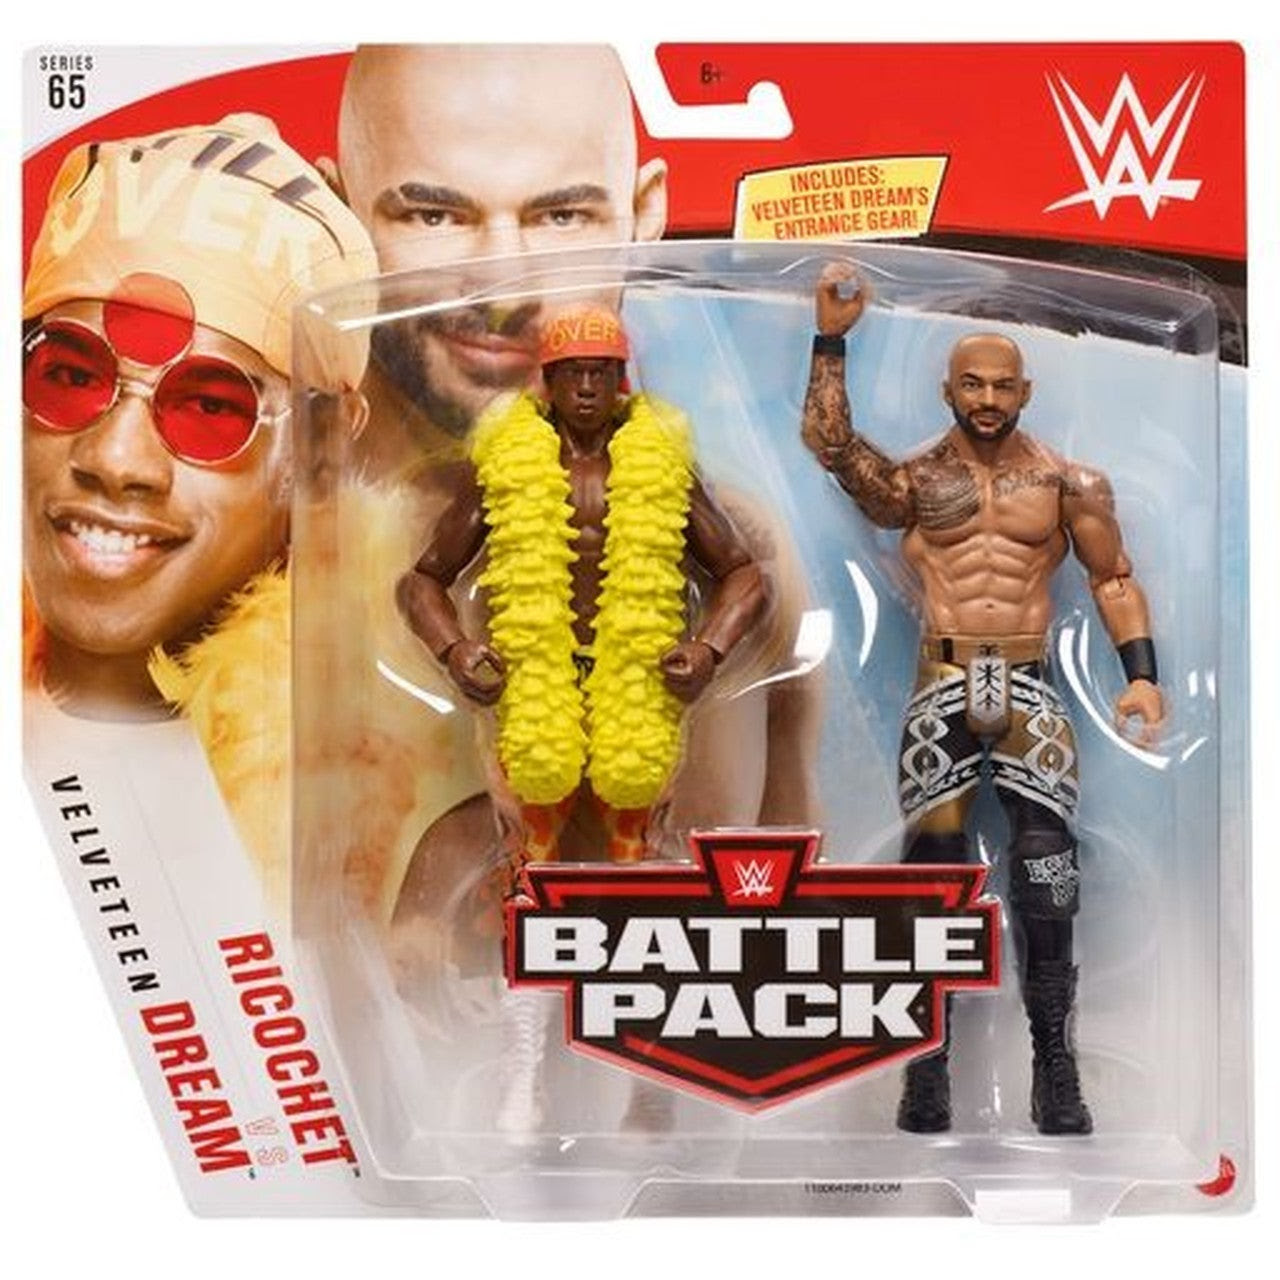 Image of WWE Battle Pack Series 65 - Ricochet & Velveteen Dream